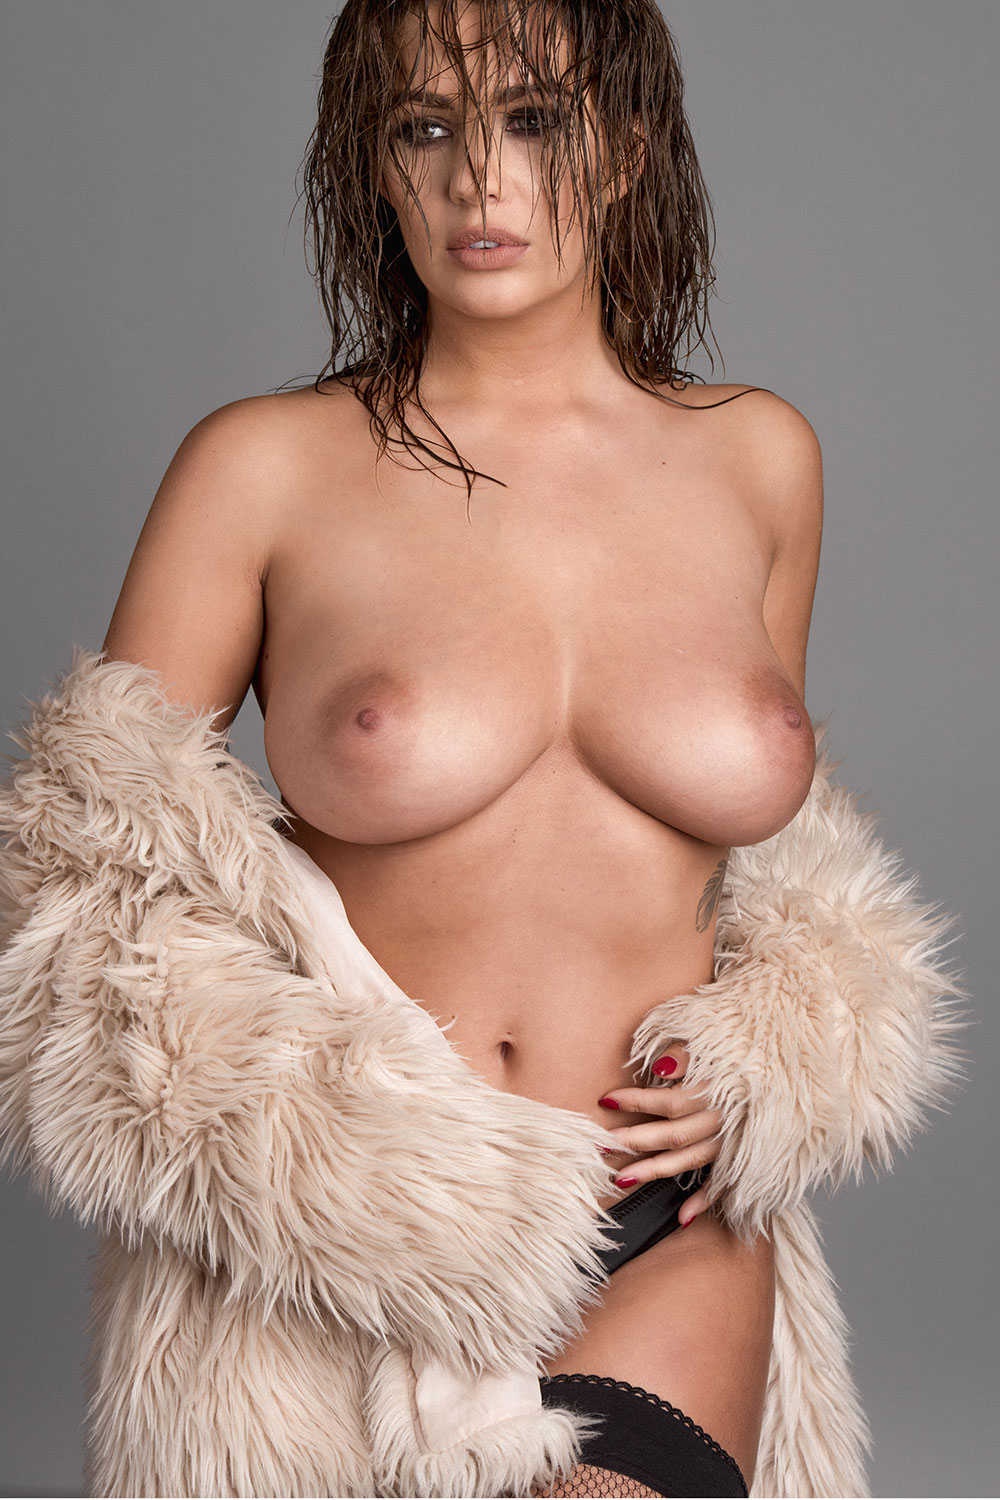 Boobs Pics Of Holly Peers